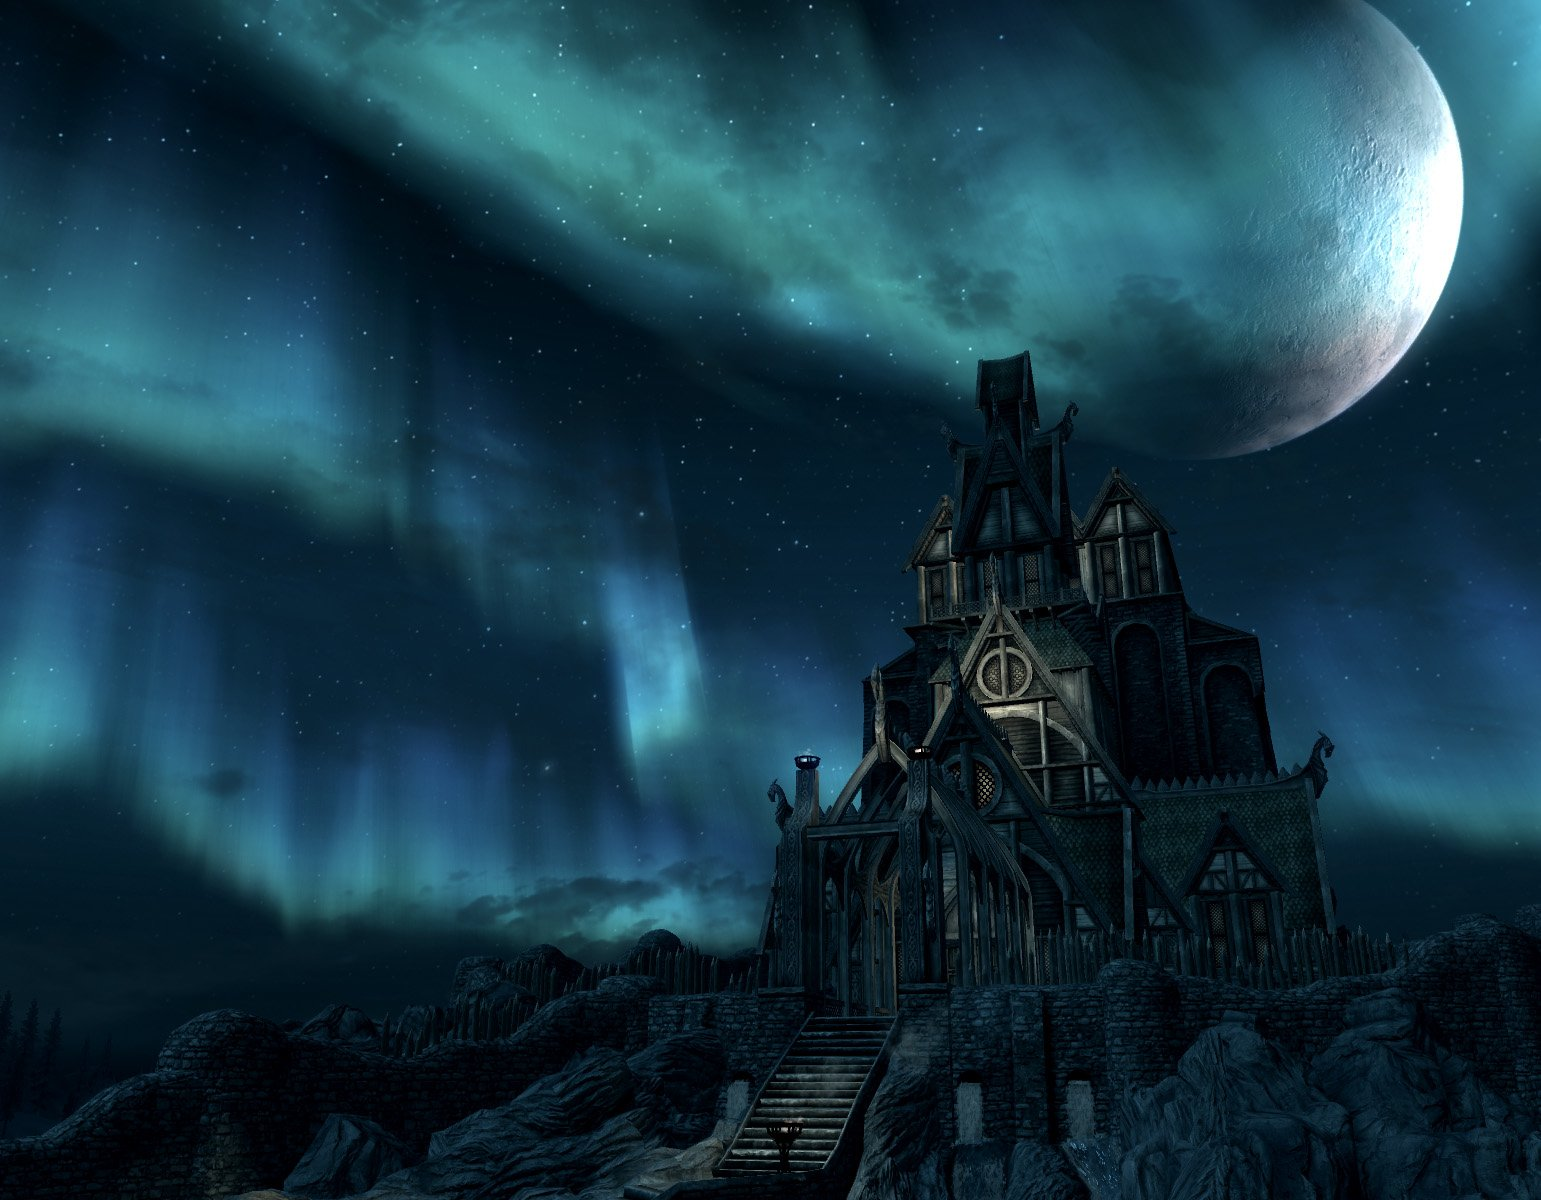 Video Game - The Elder Scrolls V: Skyrim  The Elder Scrolls Skyrim Video Game Moon Building Wallpaper